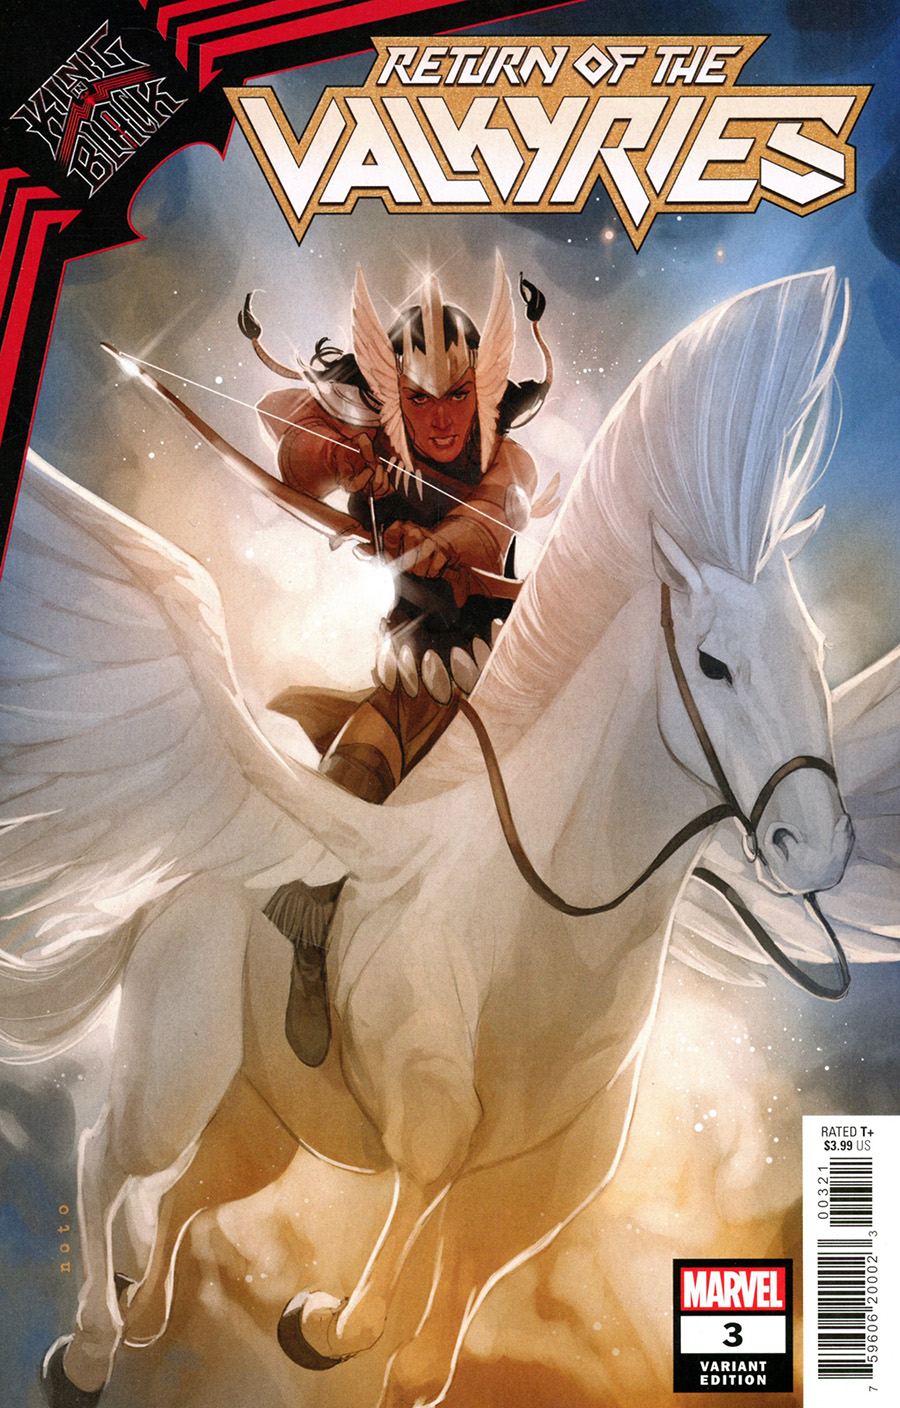 King In Black Return Of The Valkyries #3 Cover C Variant Phil Noto Profile Cover